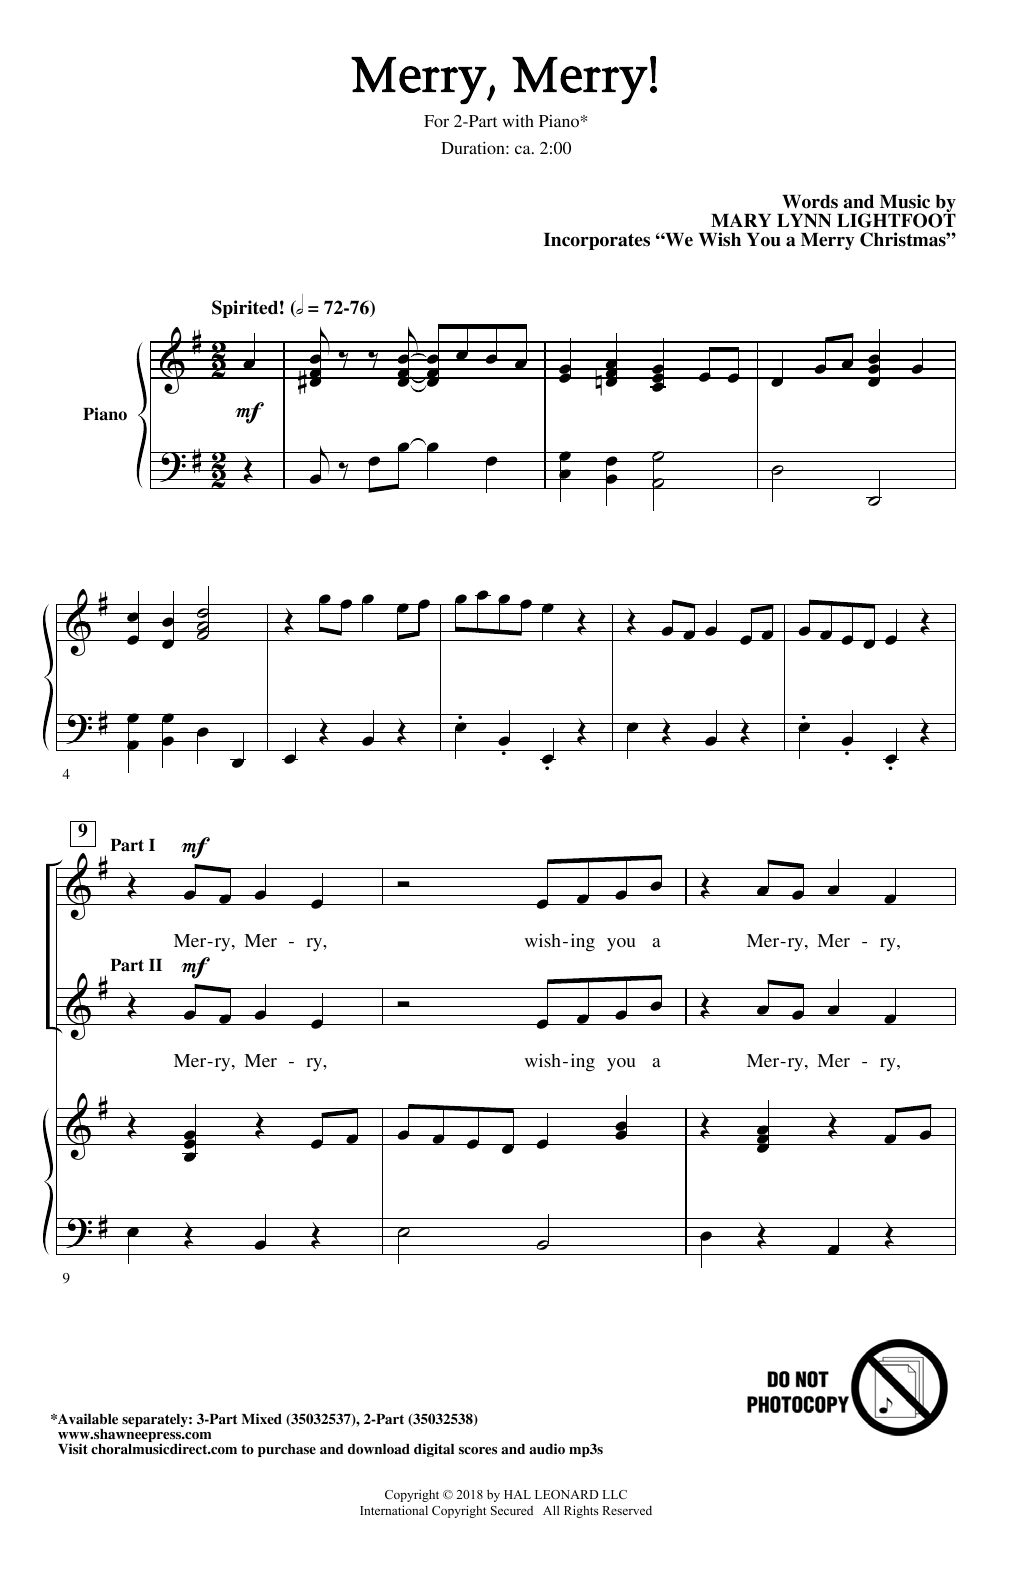 Mary Lynn Lightfoot Merry, Merry! sheet music notes and chords